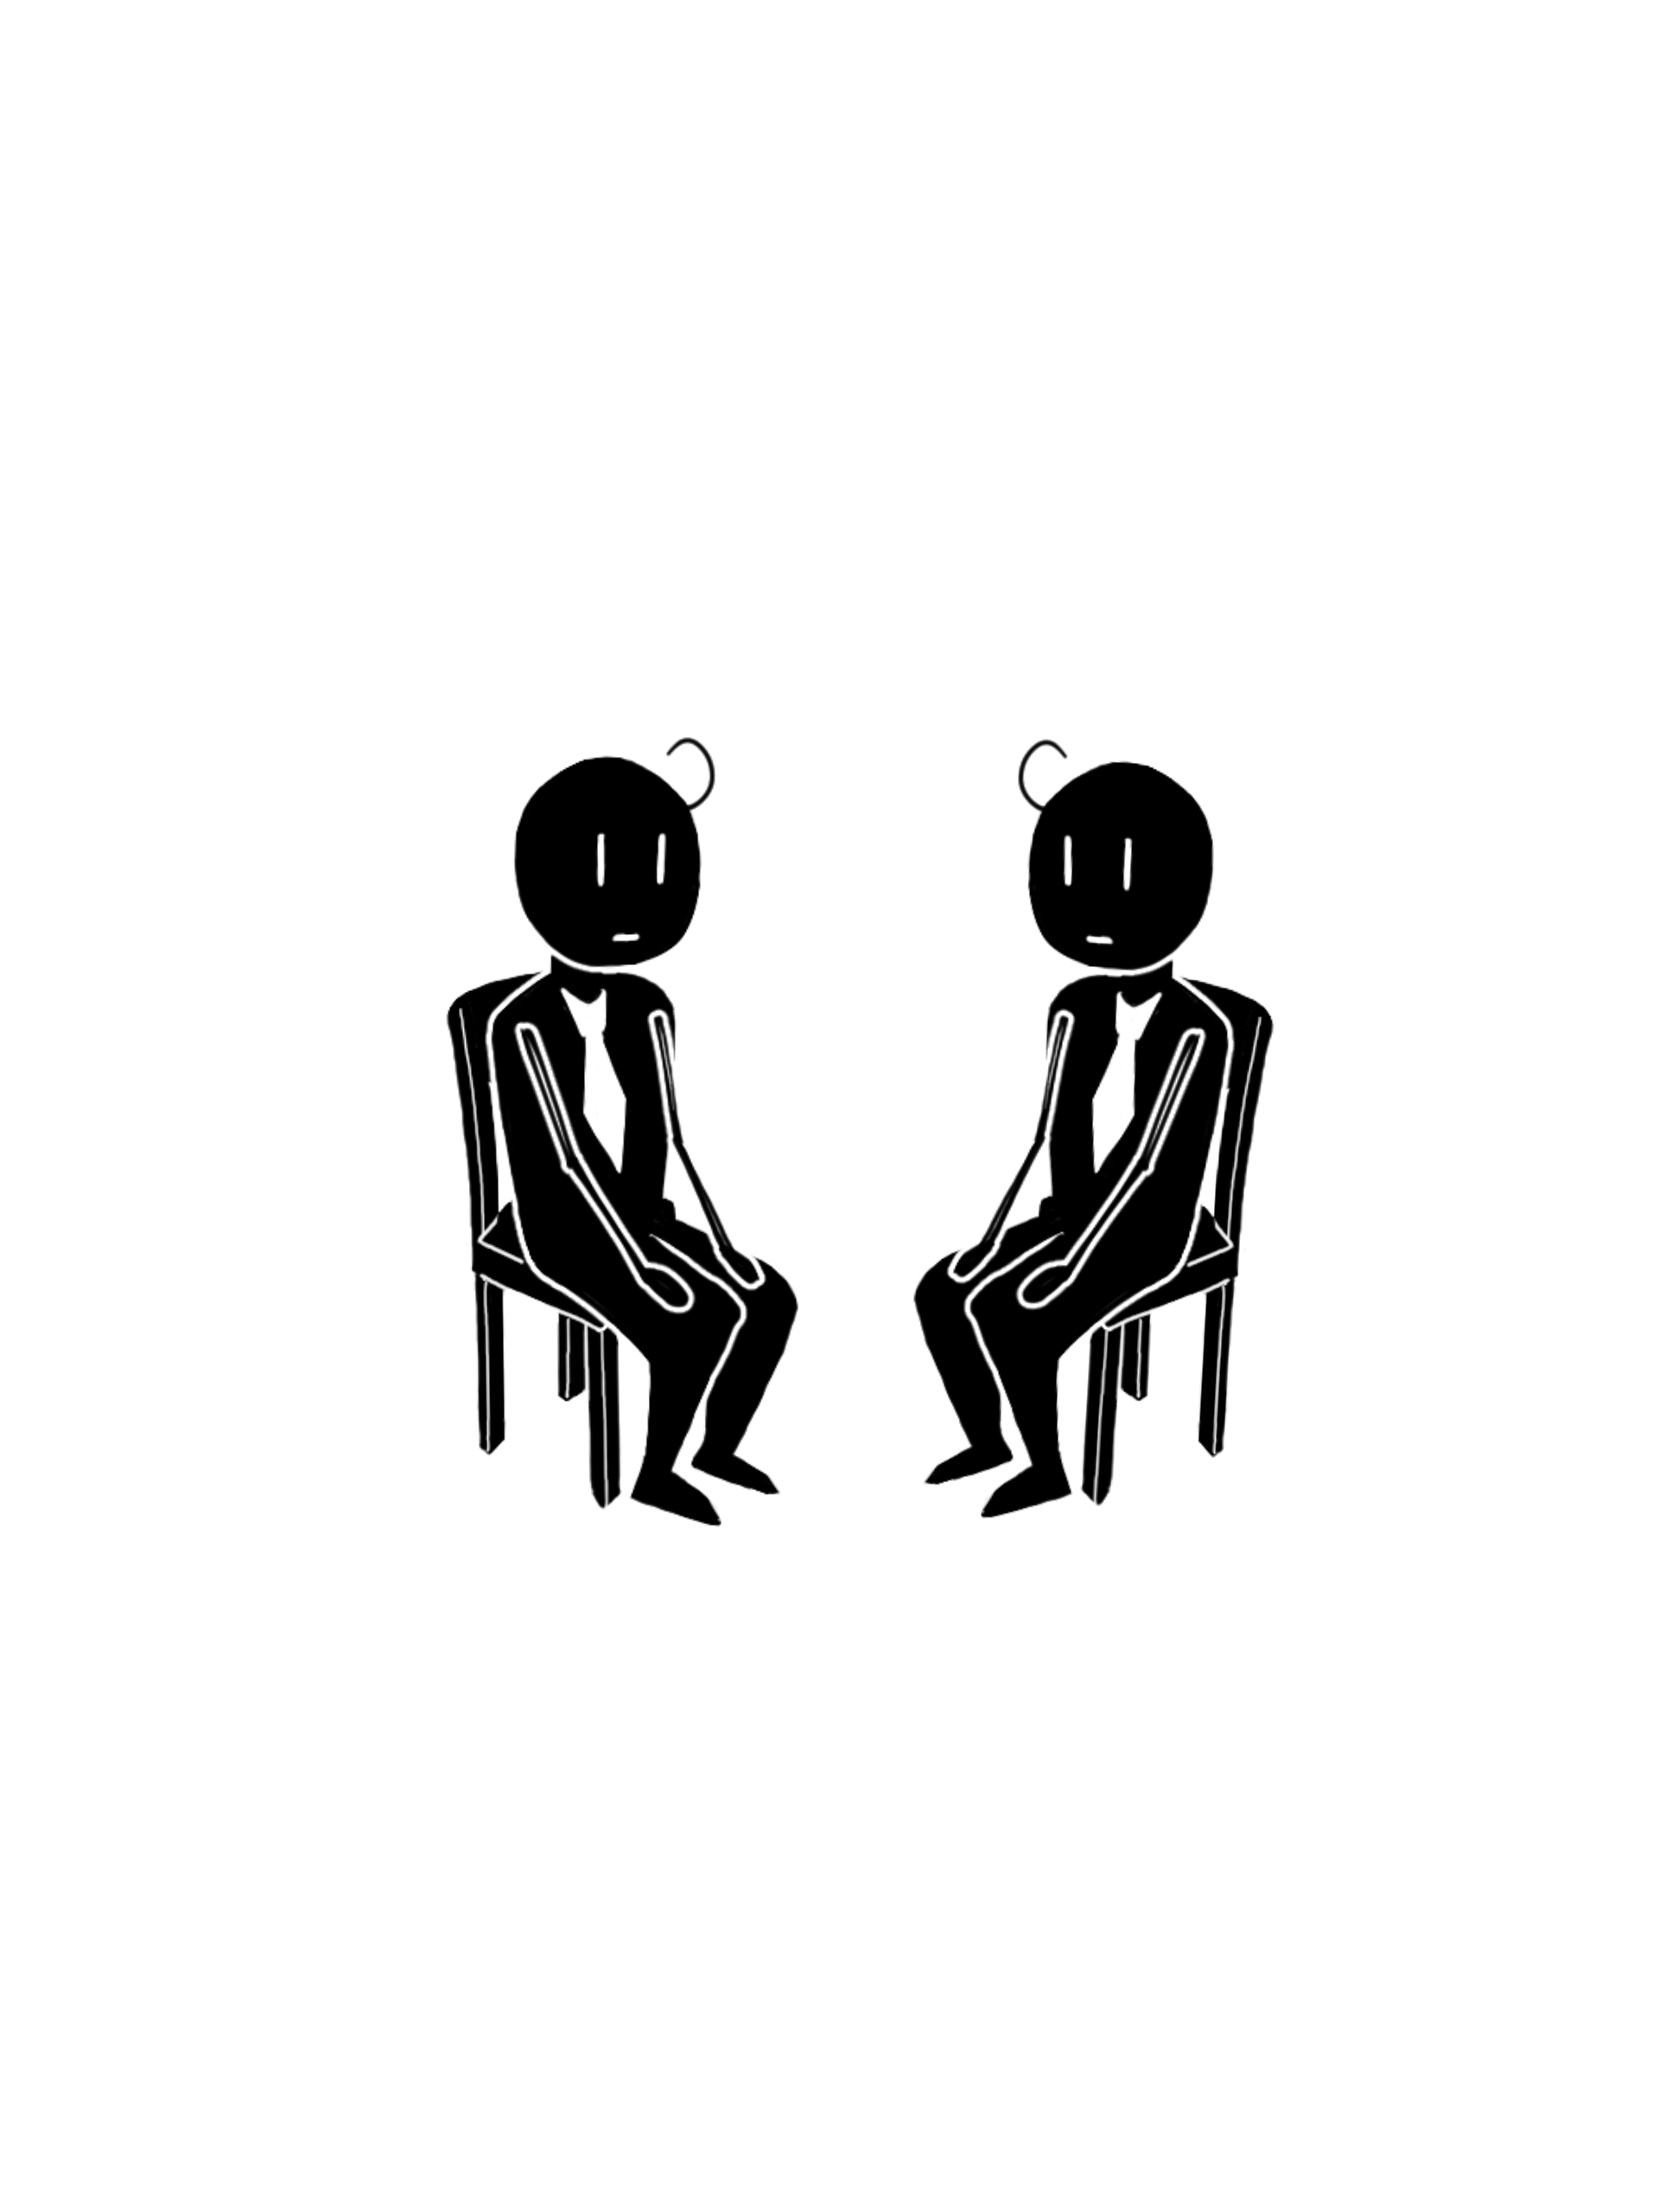 イスに座る男の人のイラスト / Illustration of a man sitting on a chair.